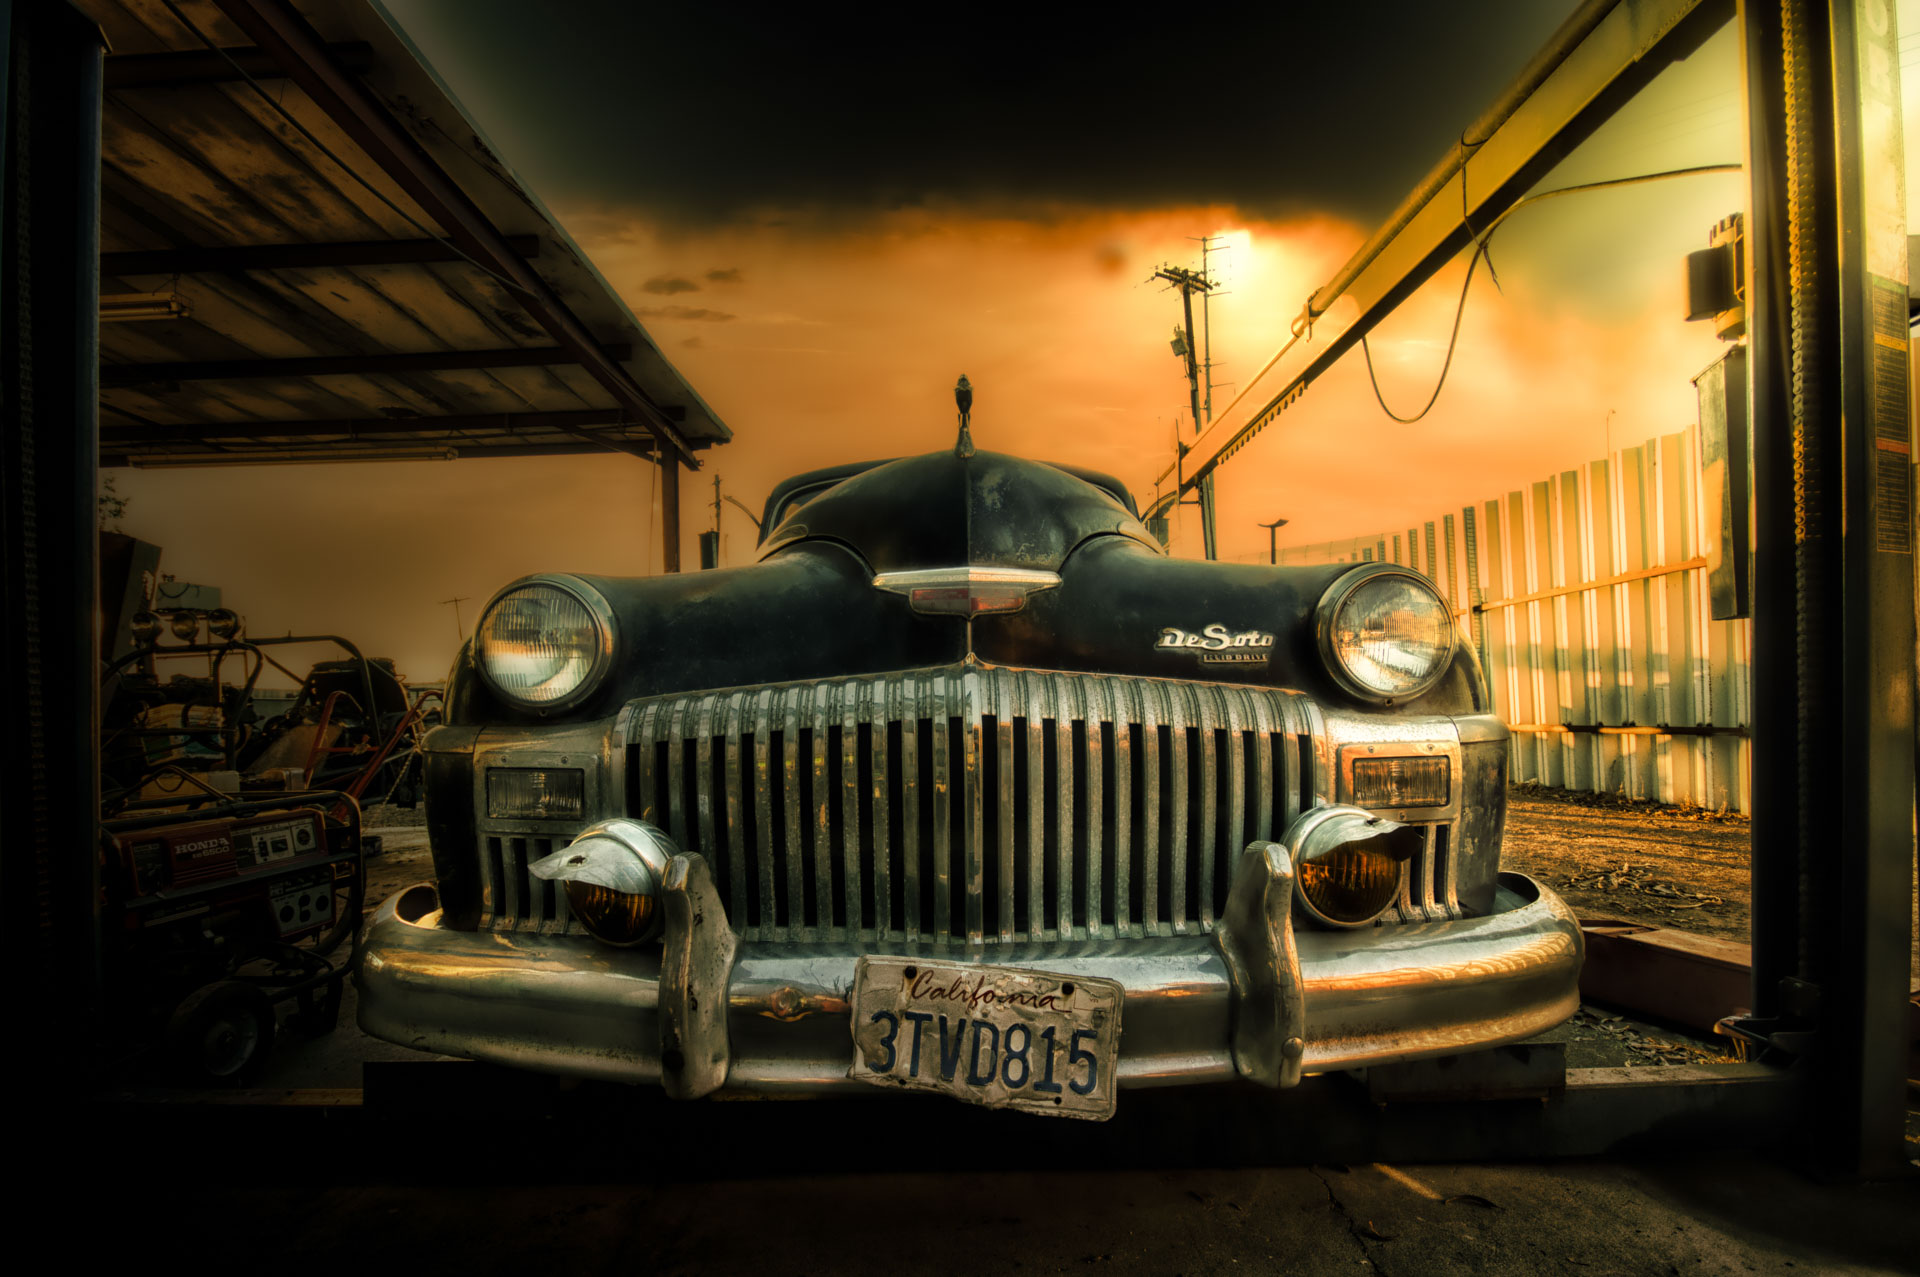 DeSoto - a professional photography of classic American car models: the hottest events in the world of auto industry, high-quality photo studio and editing services.